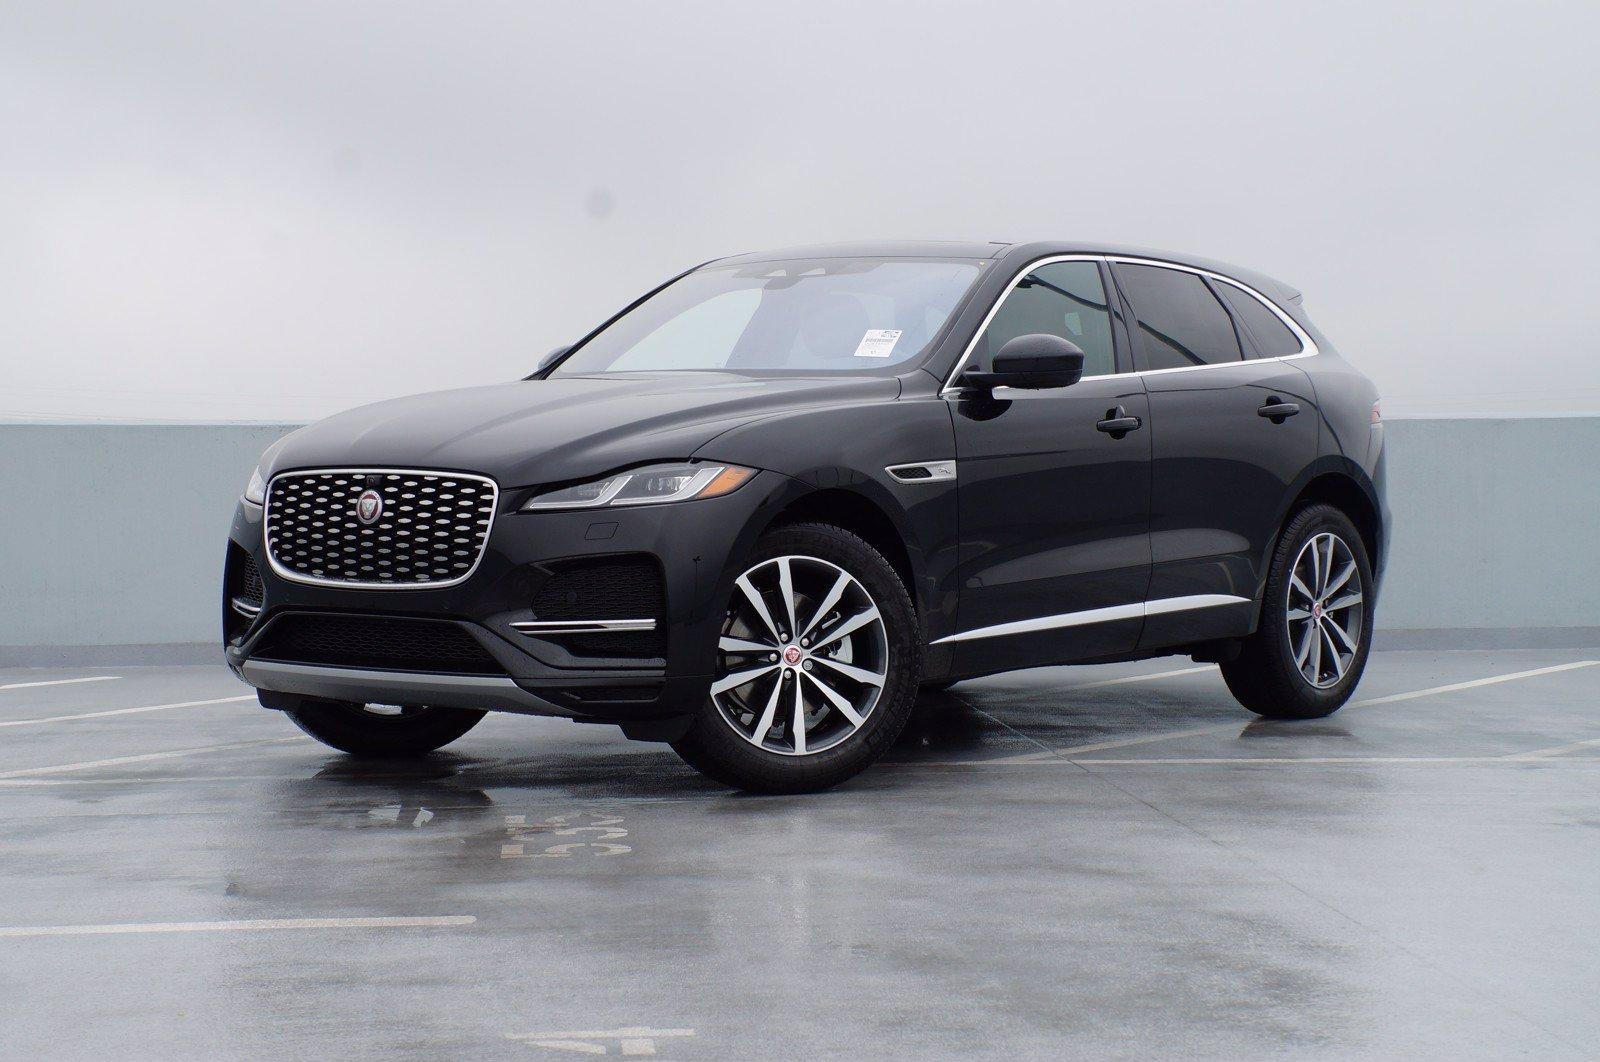 2021 Jaguar F-PACE Vehicle Photo in Austin, TX 78717